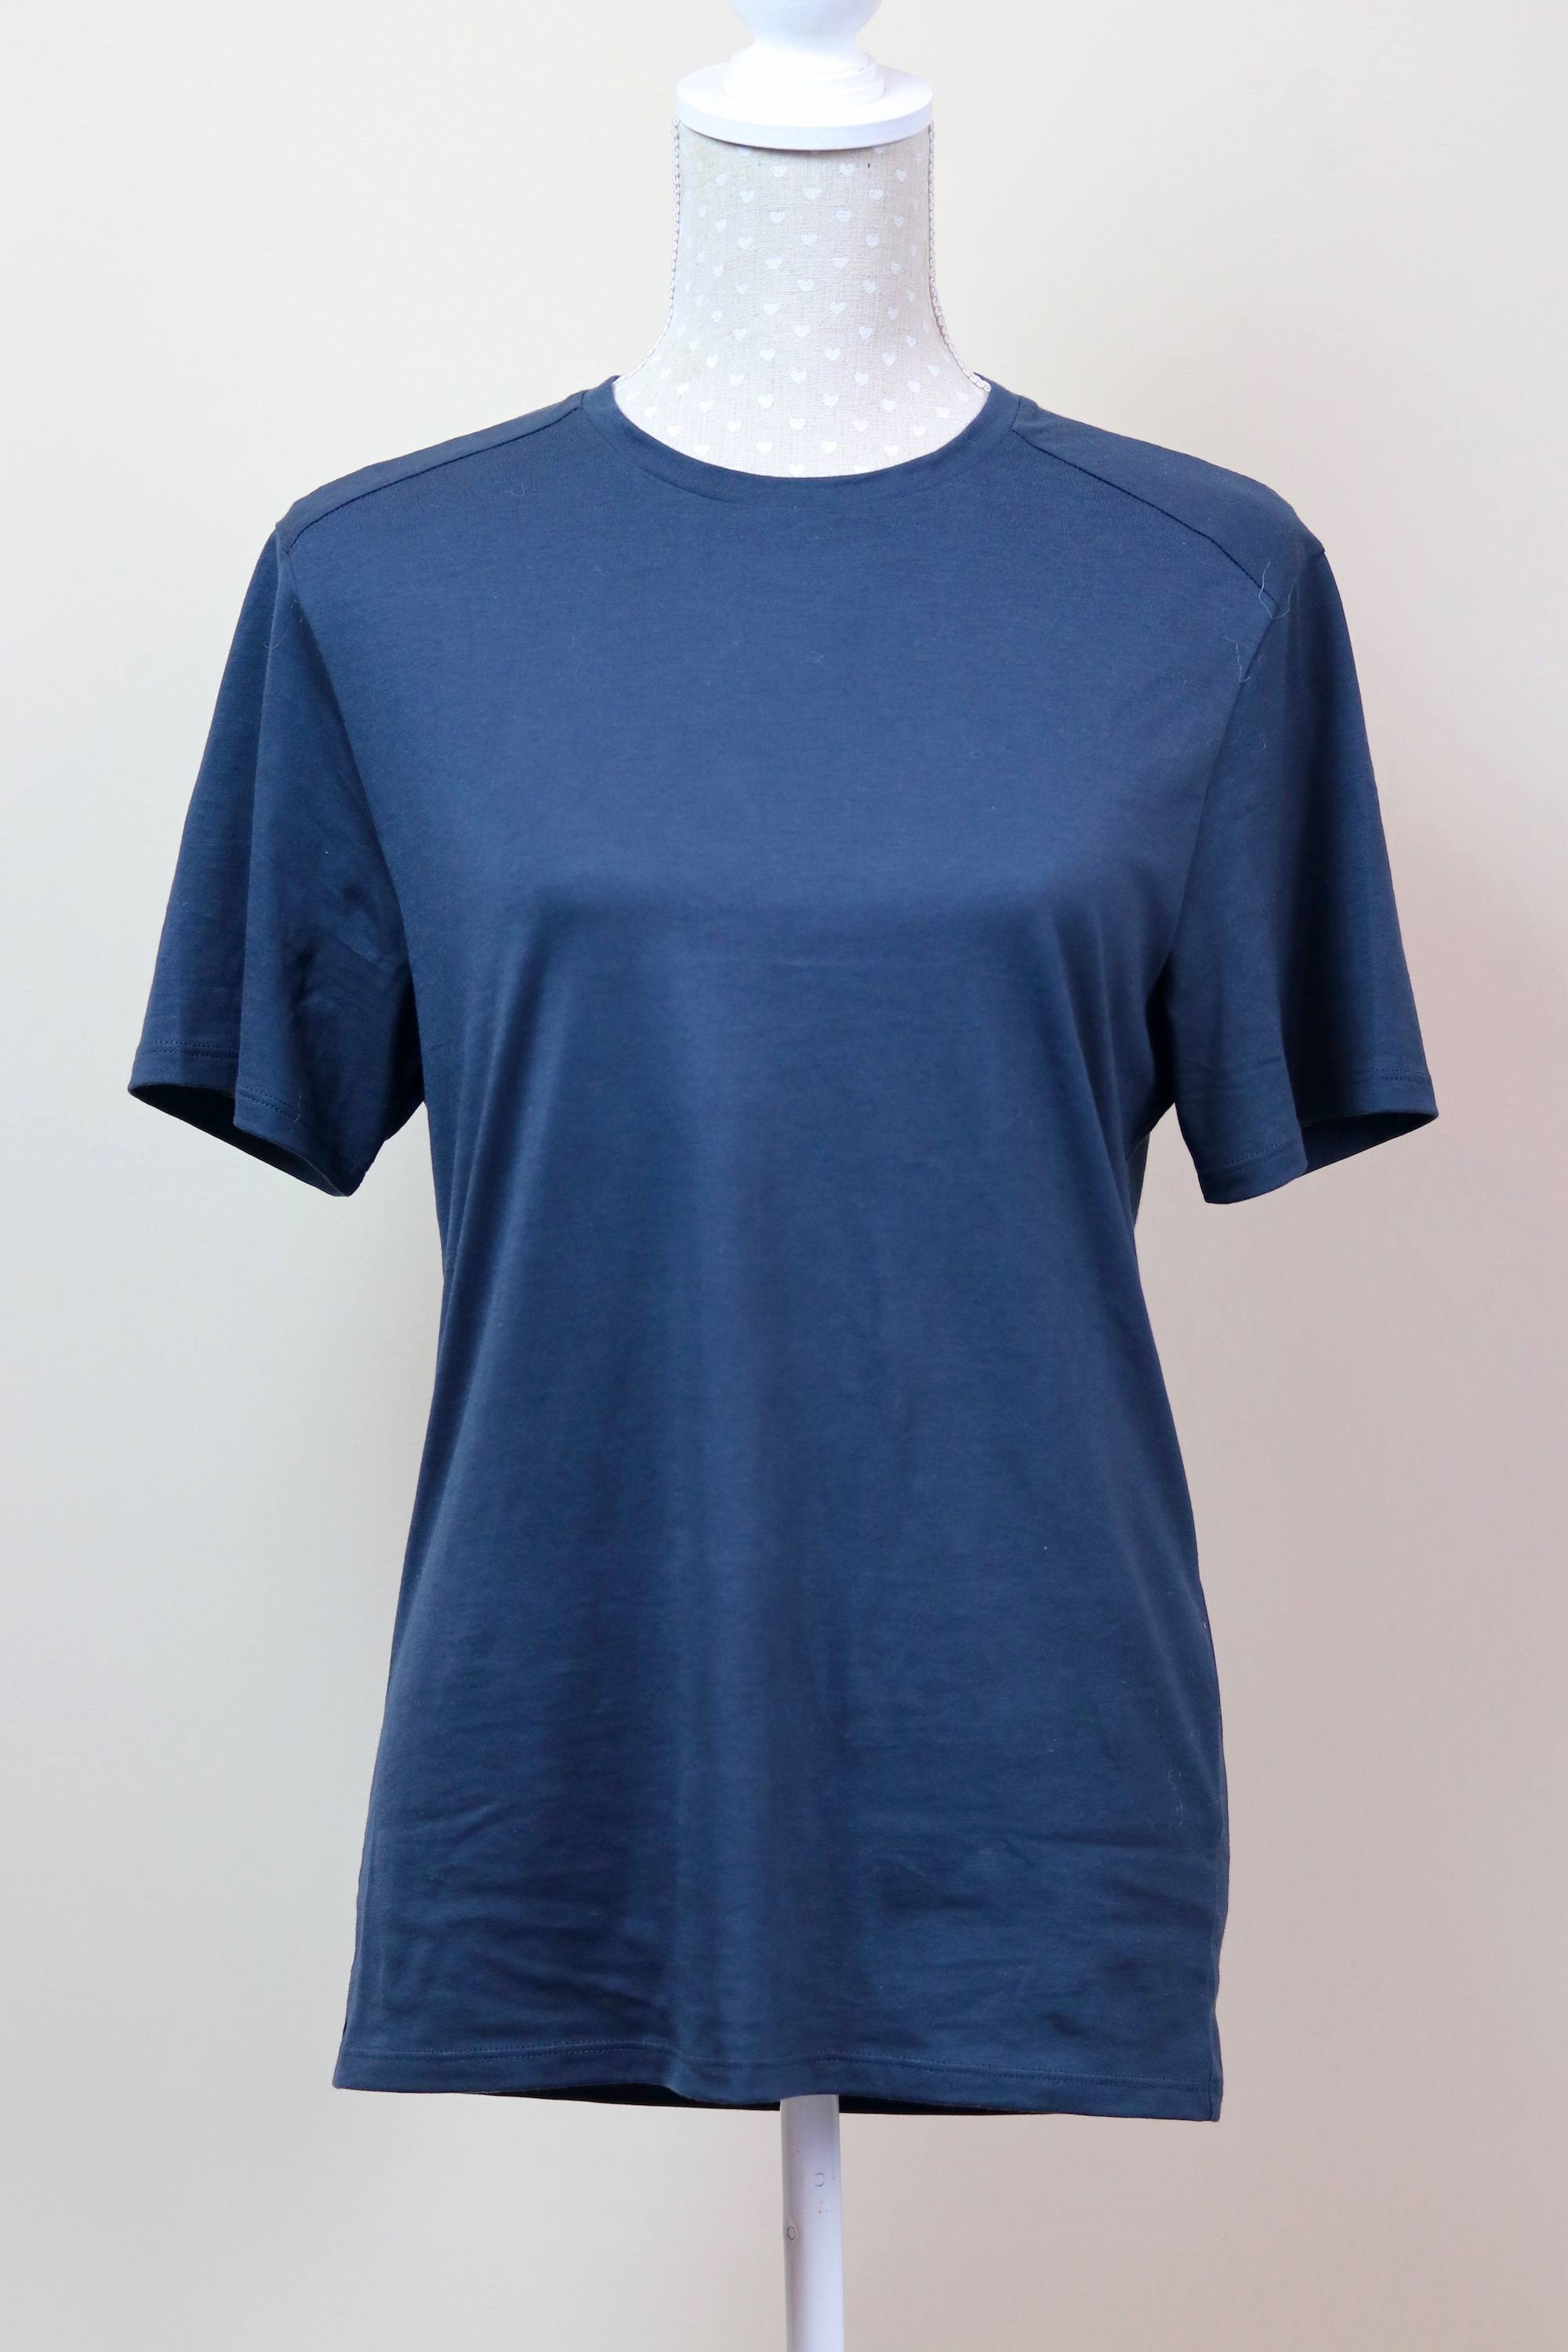 pima cotton t shirt